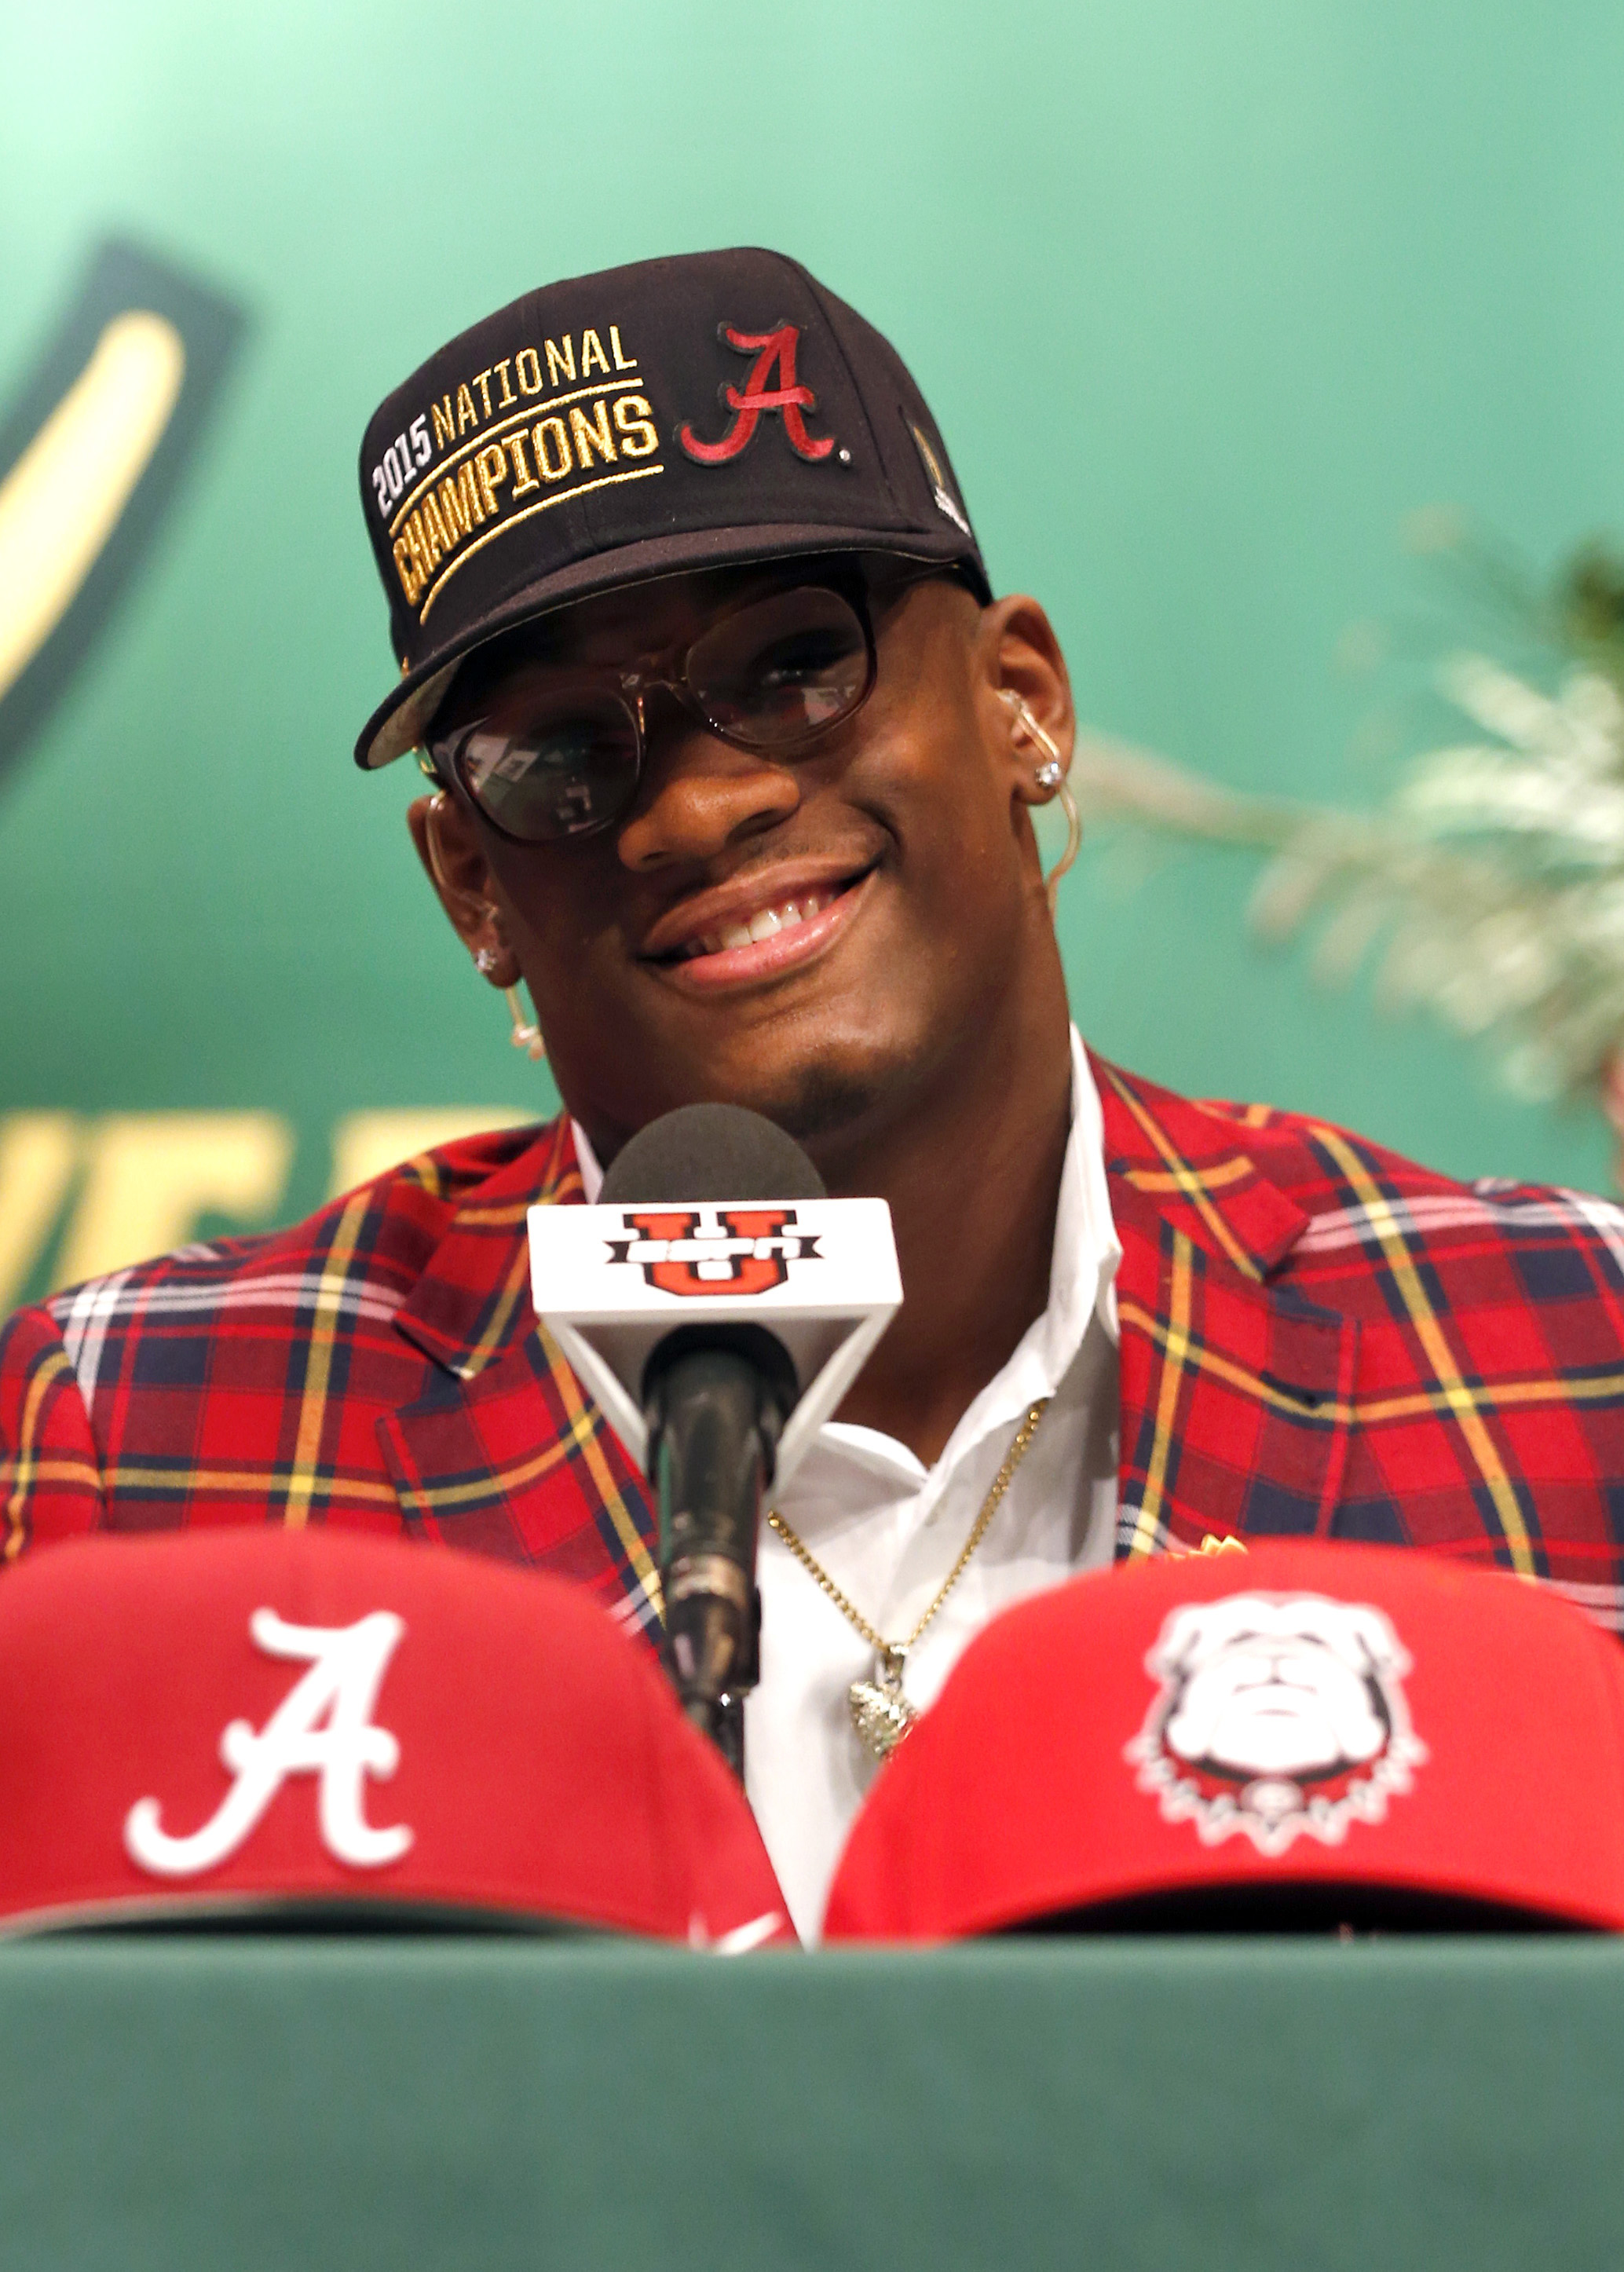 Carver high school linebacker Lyndell Wilson chooses to play for the University of Alabama at Carver High School. (Photo: Butch Dill, USA TODAY Sports)